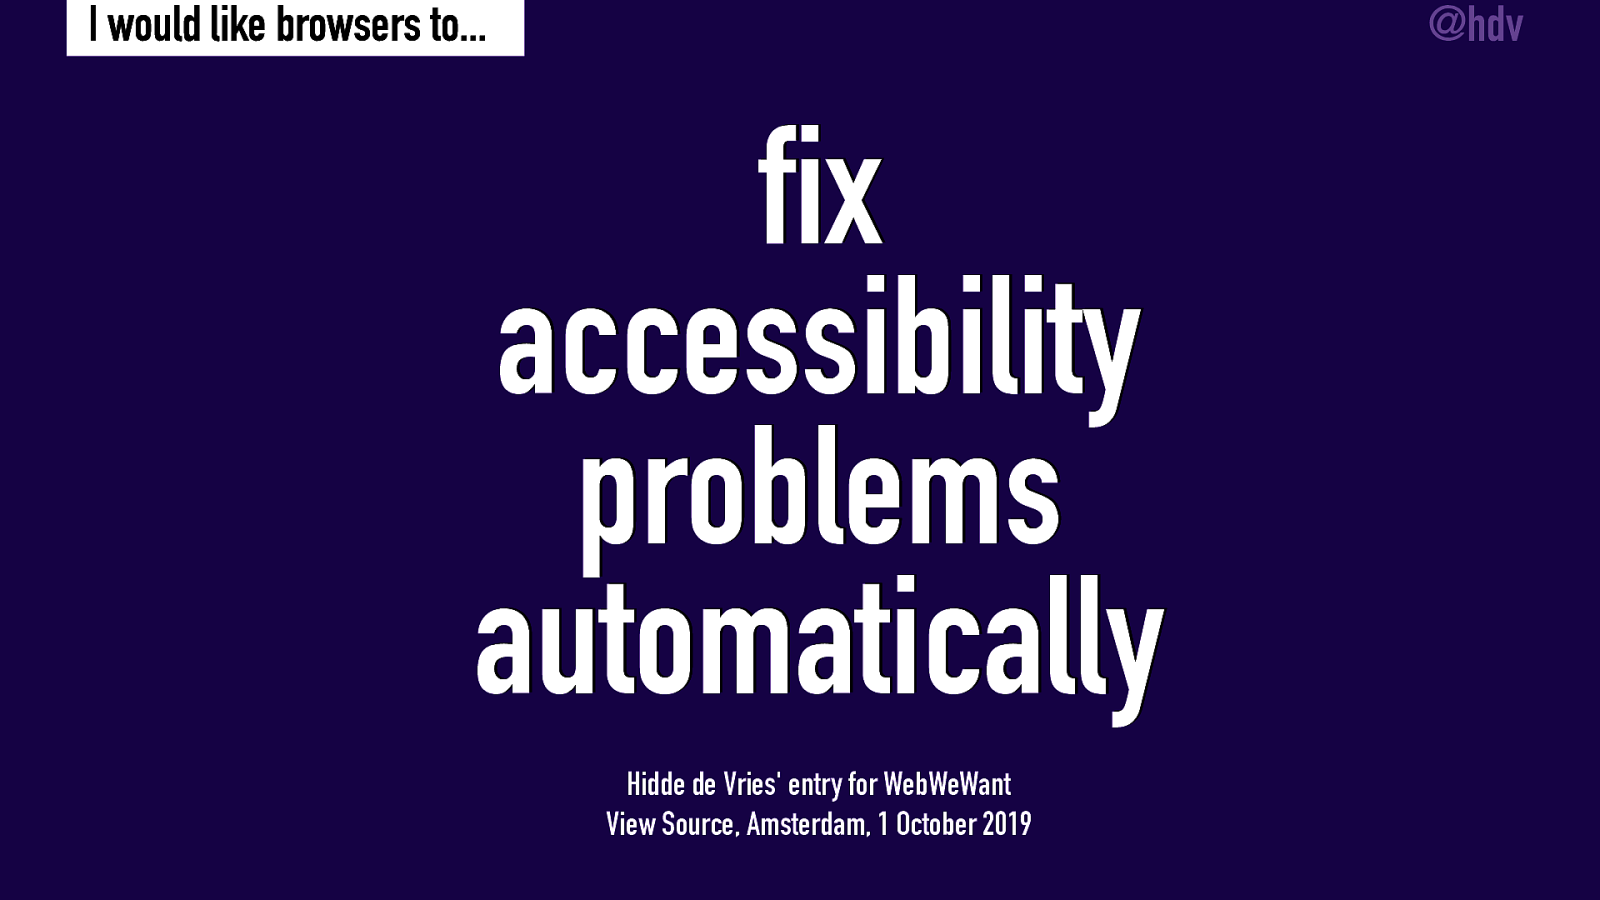 I would like browsers to fix accesssibility problems automatically